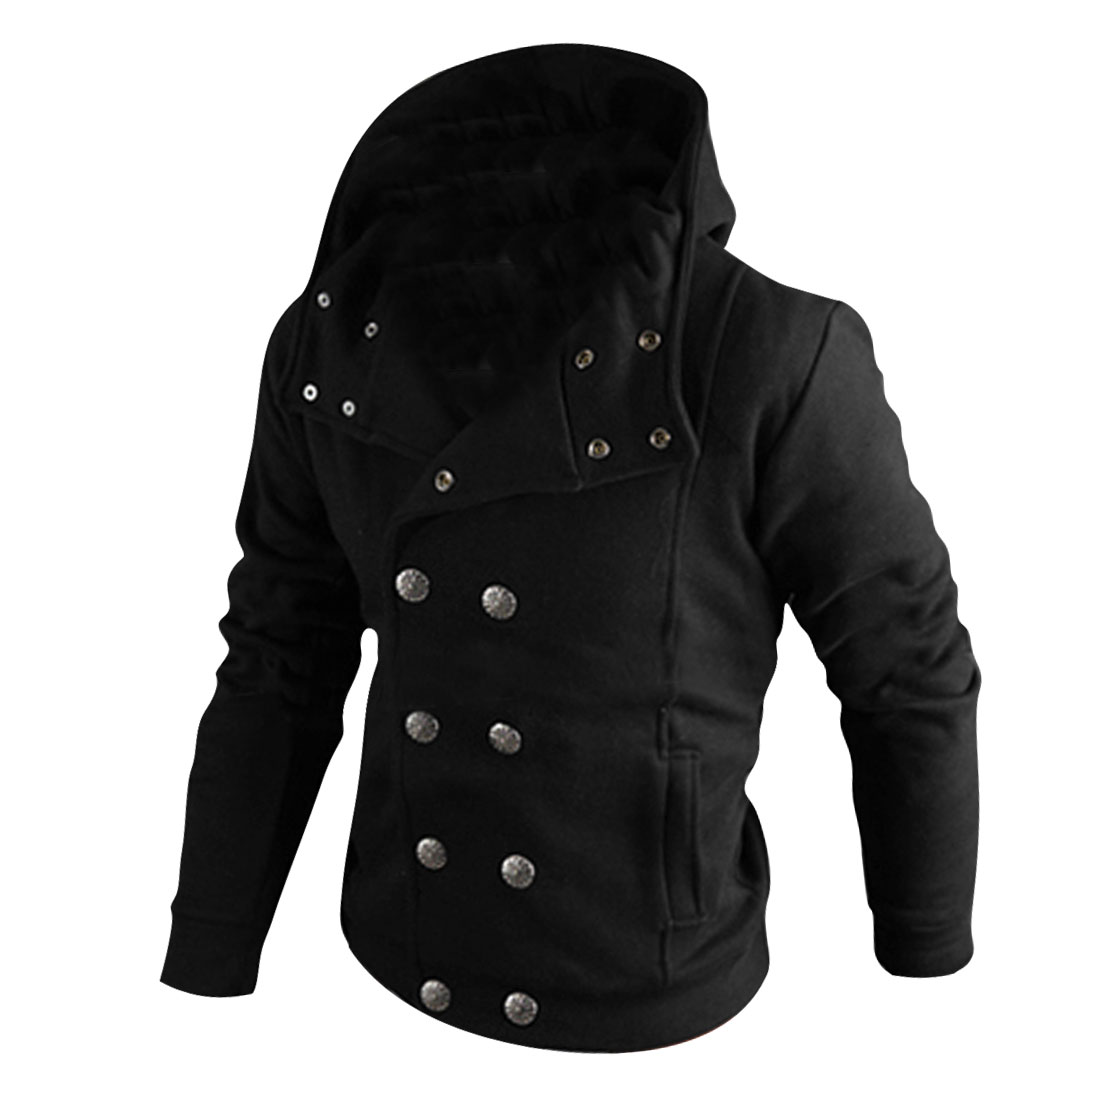 Mens Black Convertible Collar Double Breasted Casual Hooded Coat M